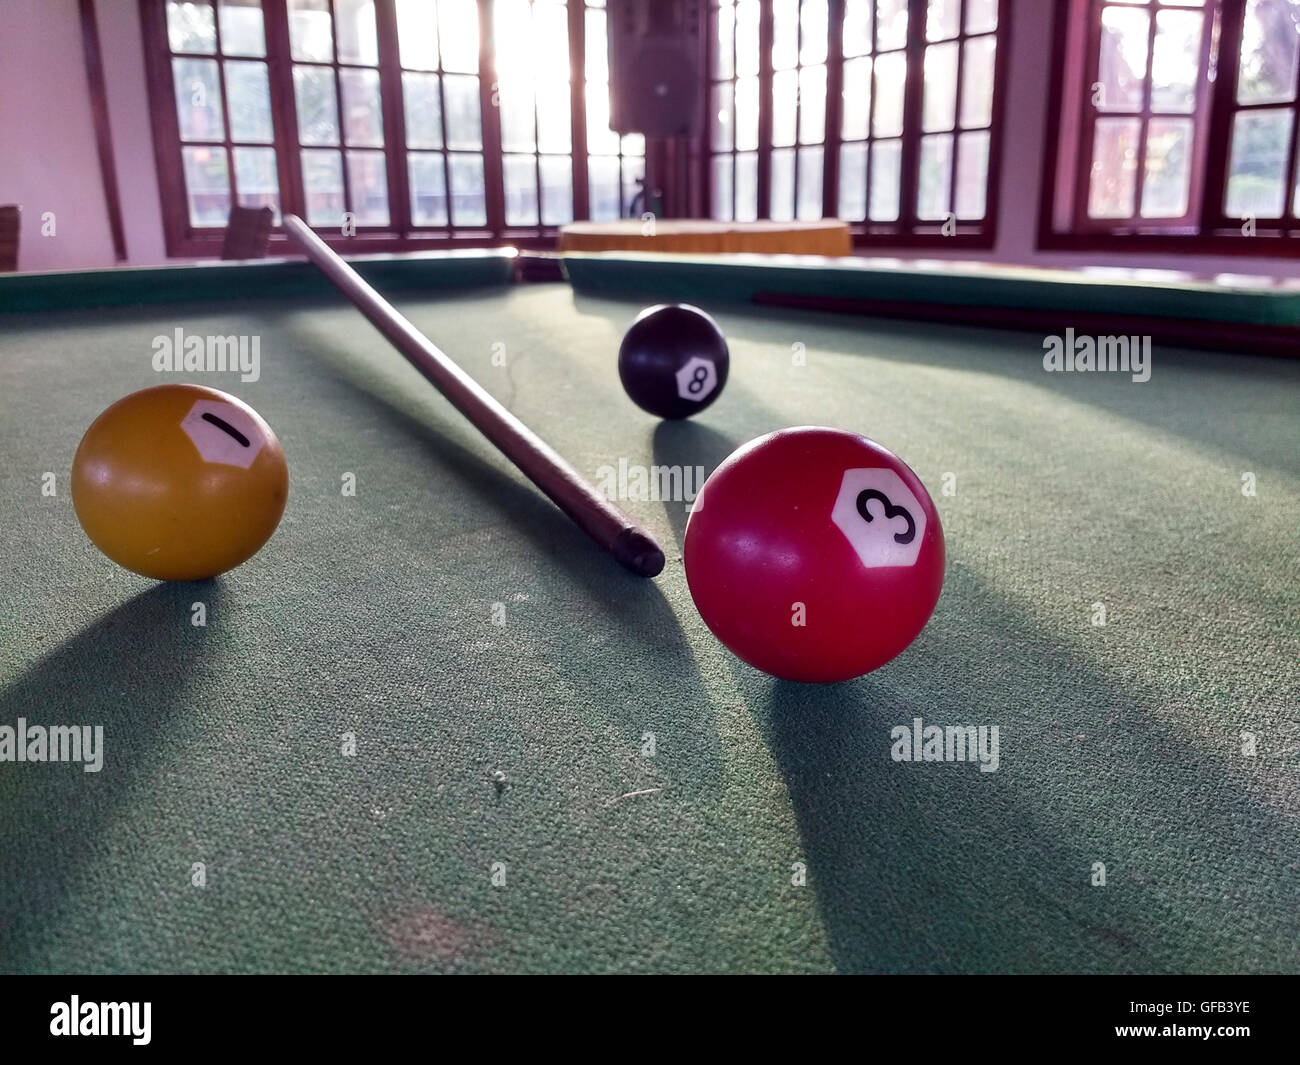 billiard table with windows in the background Stock Photo